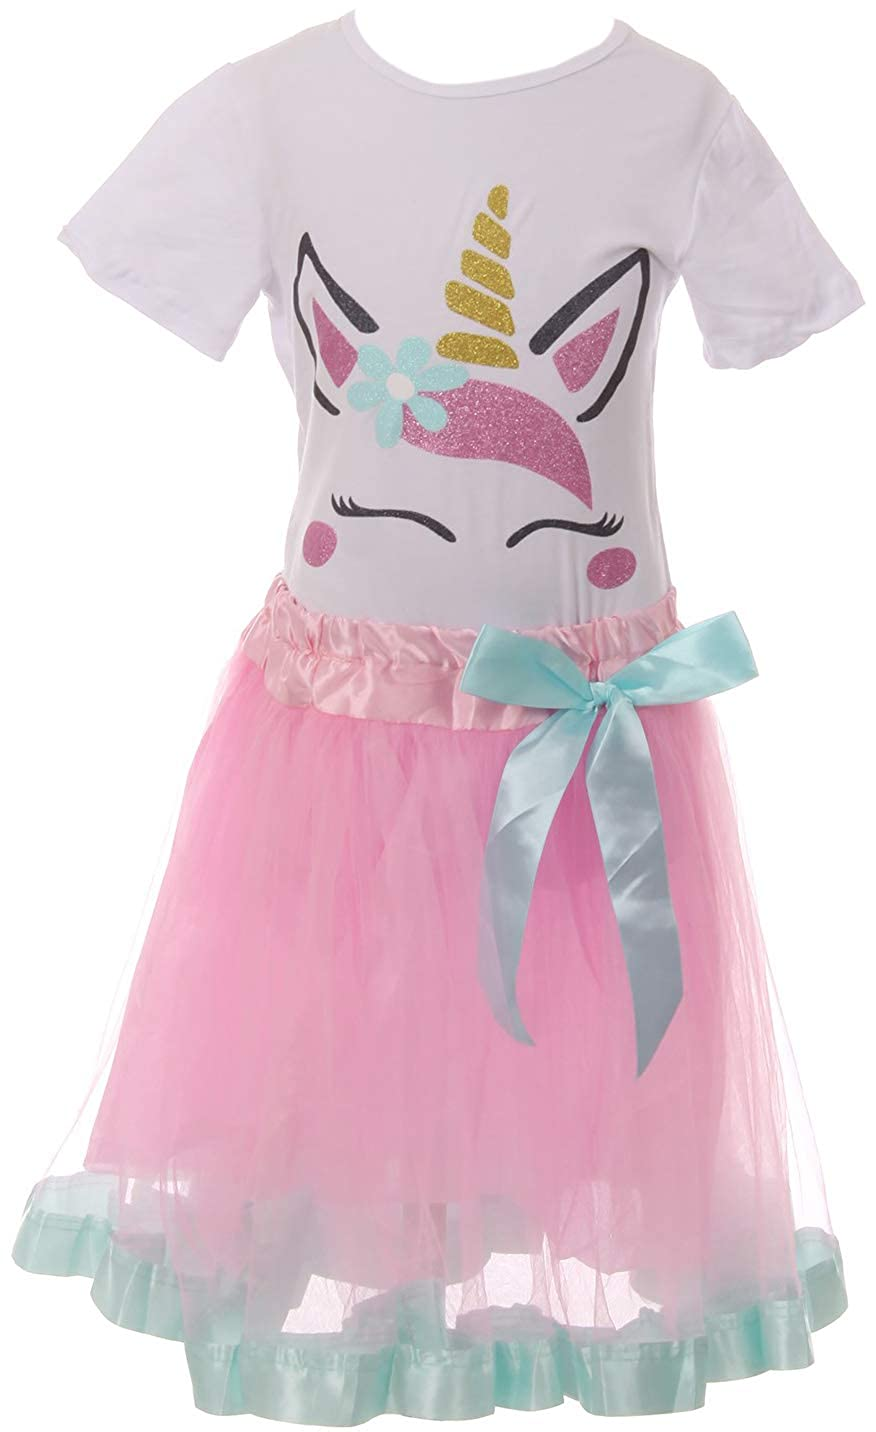 Little Girl 2 Pieces Combo Unicorn White Top Pink Tulle Lace Skirt Sets 2t-8